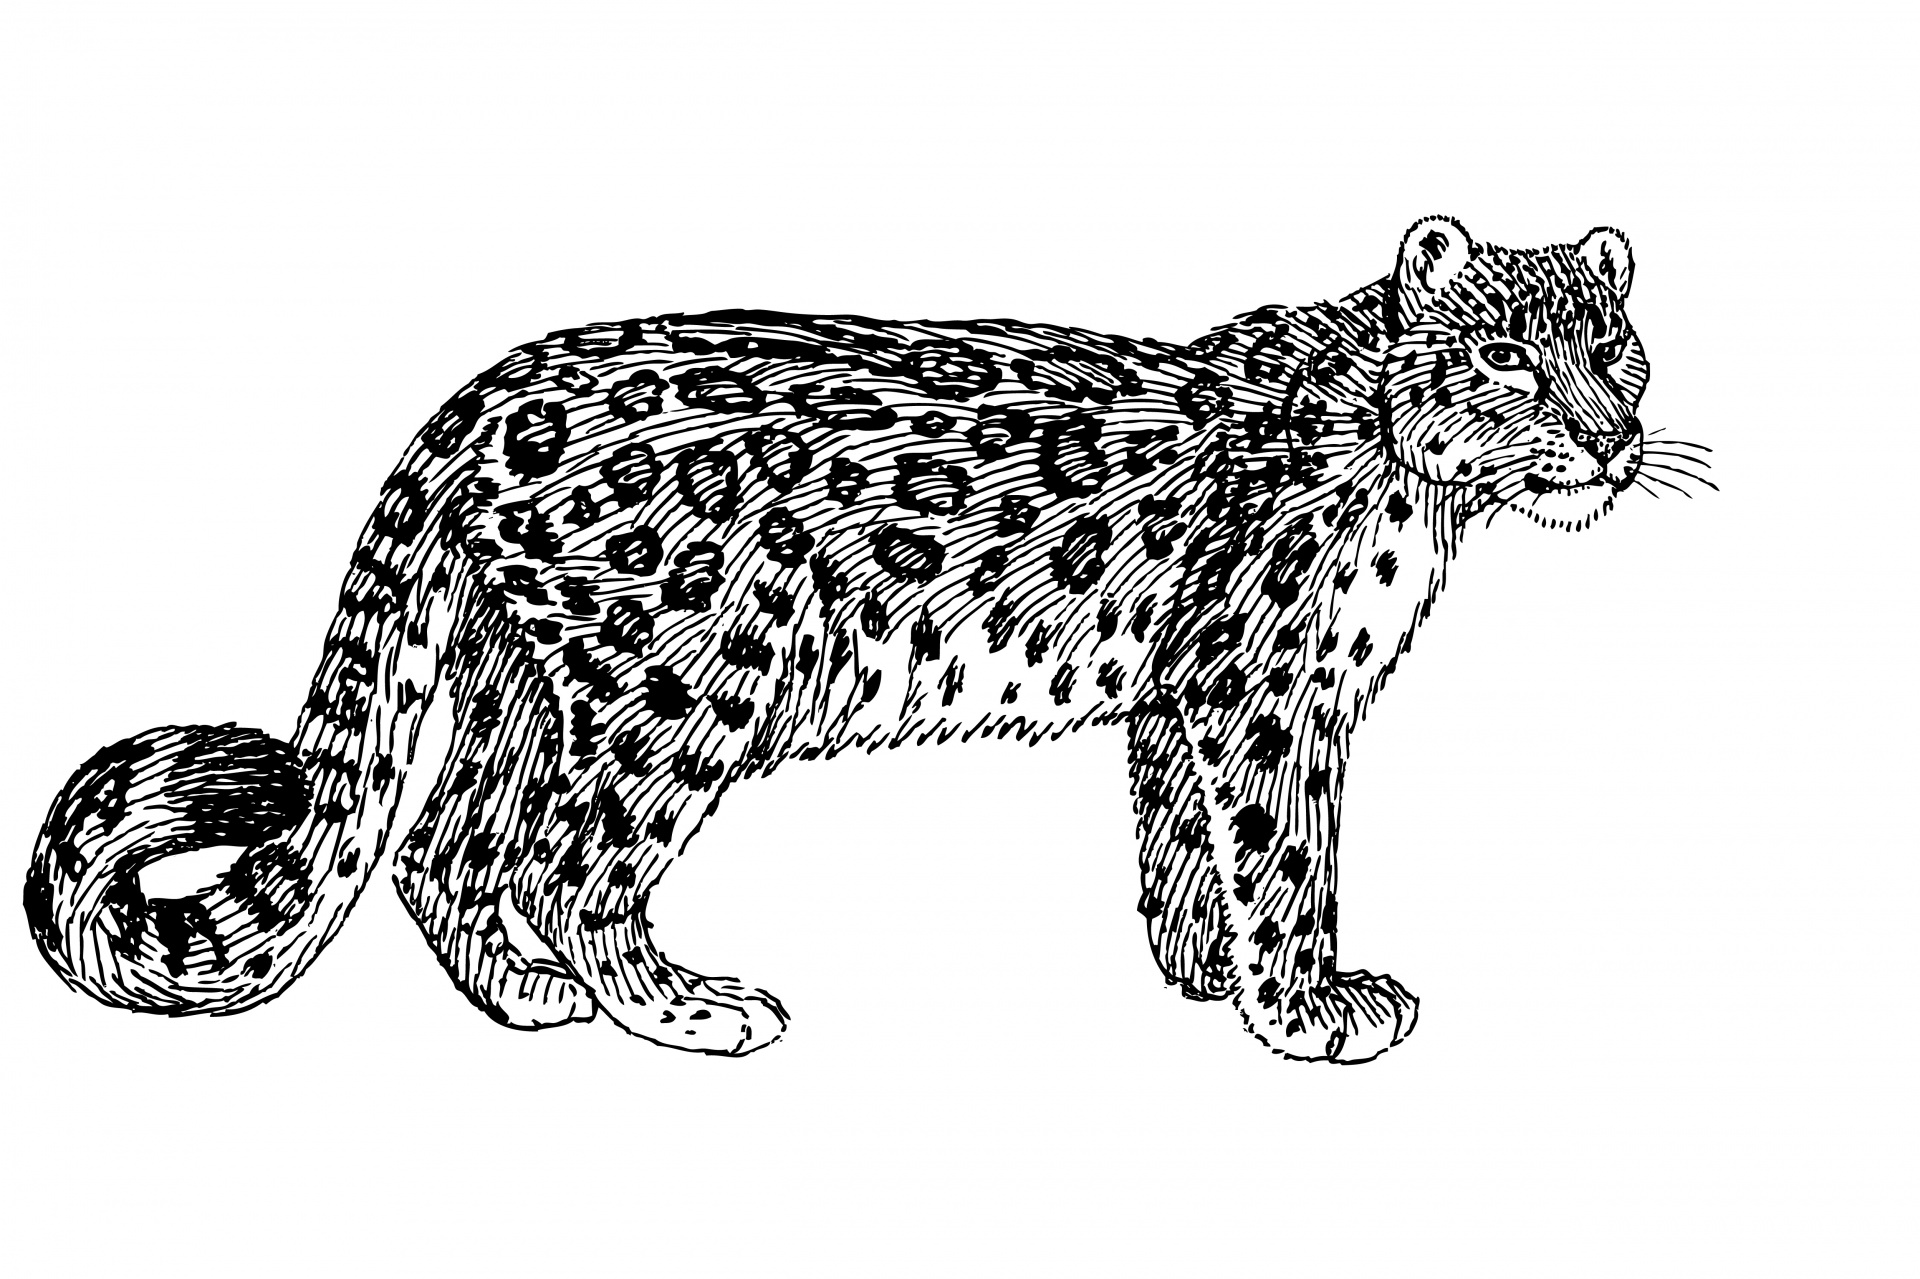 Snow illustration free stock. Leopard clipart